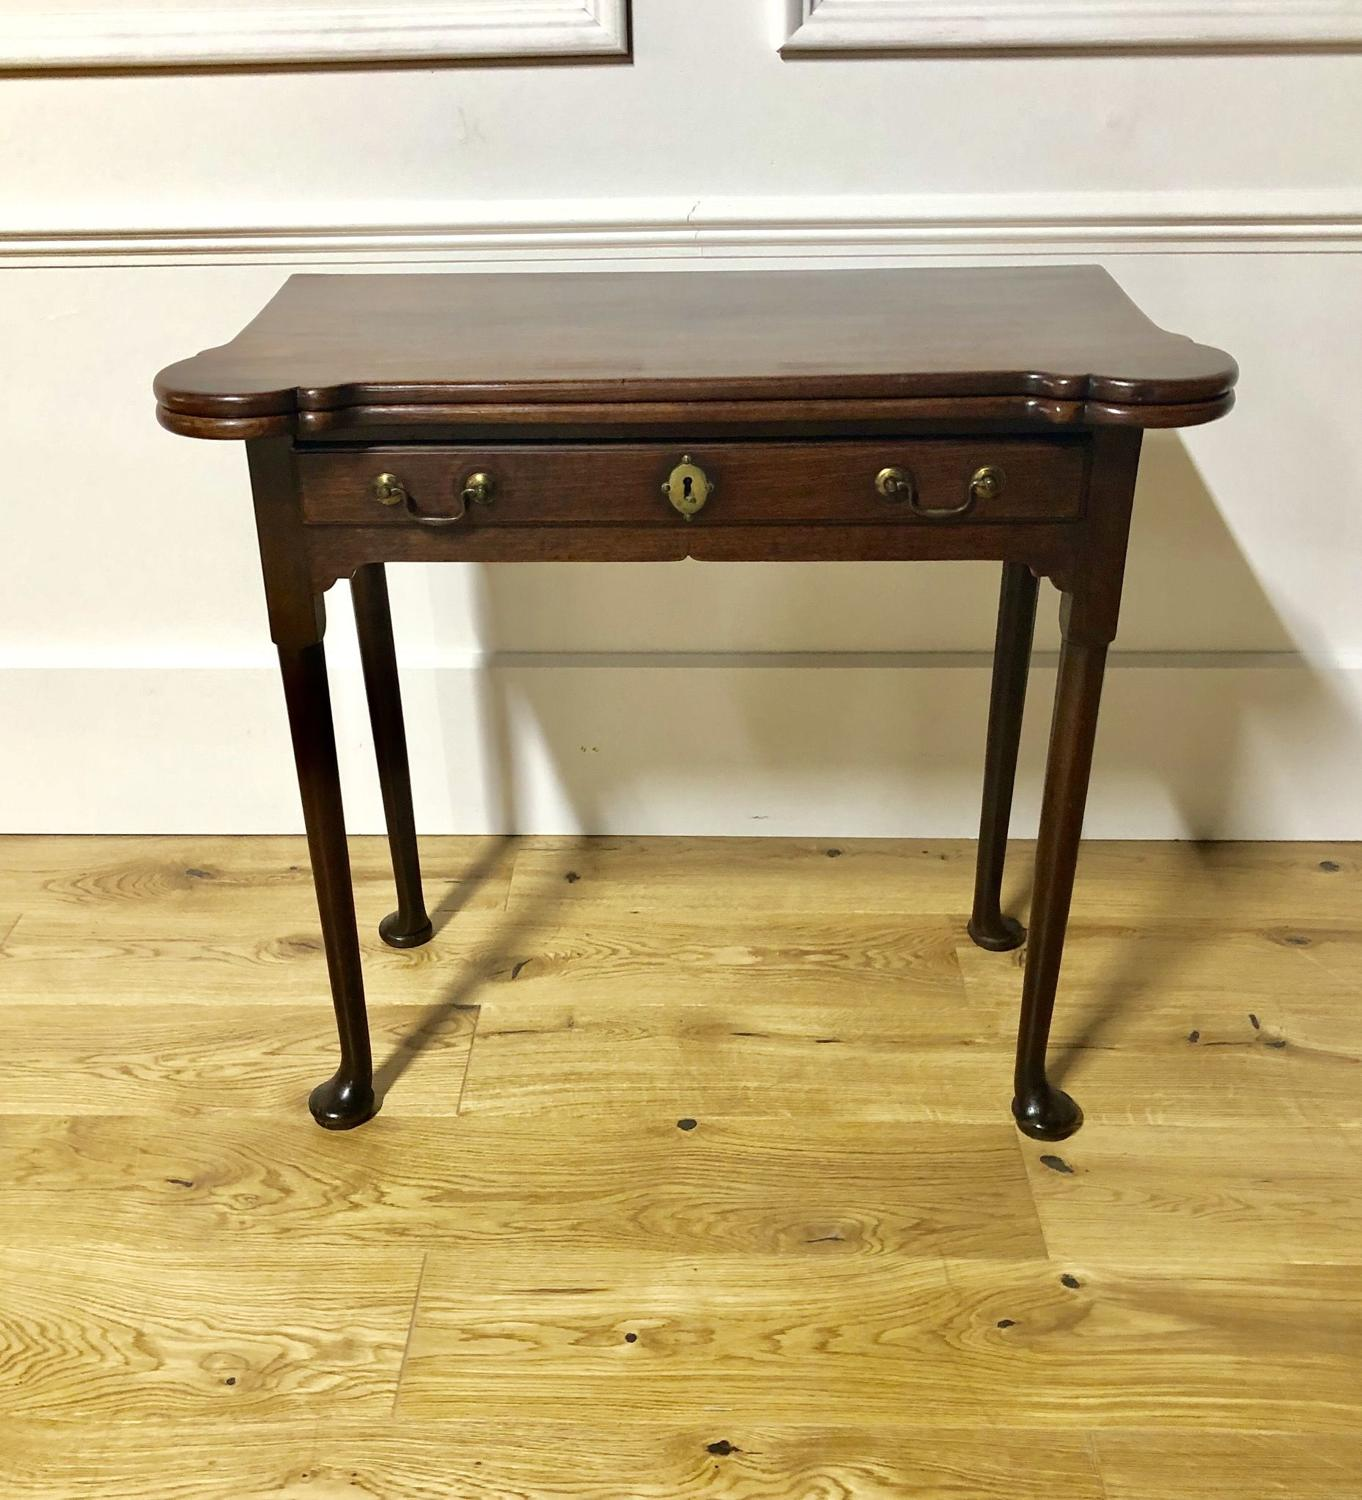 An 18thC games/sofa table